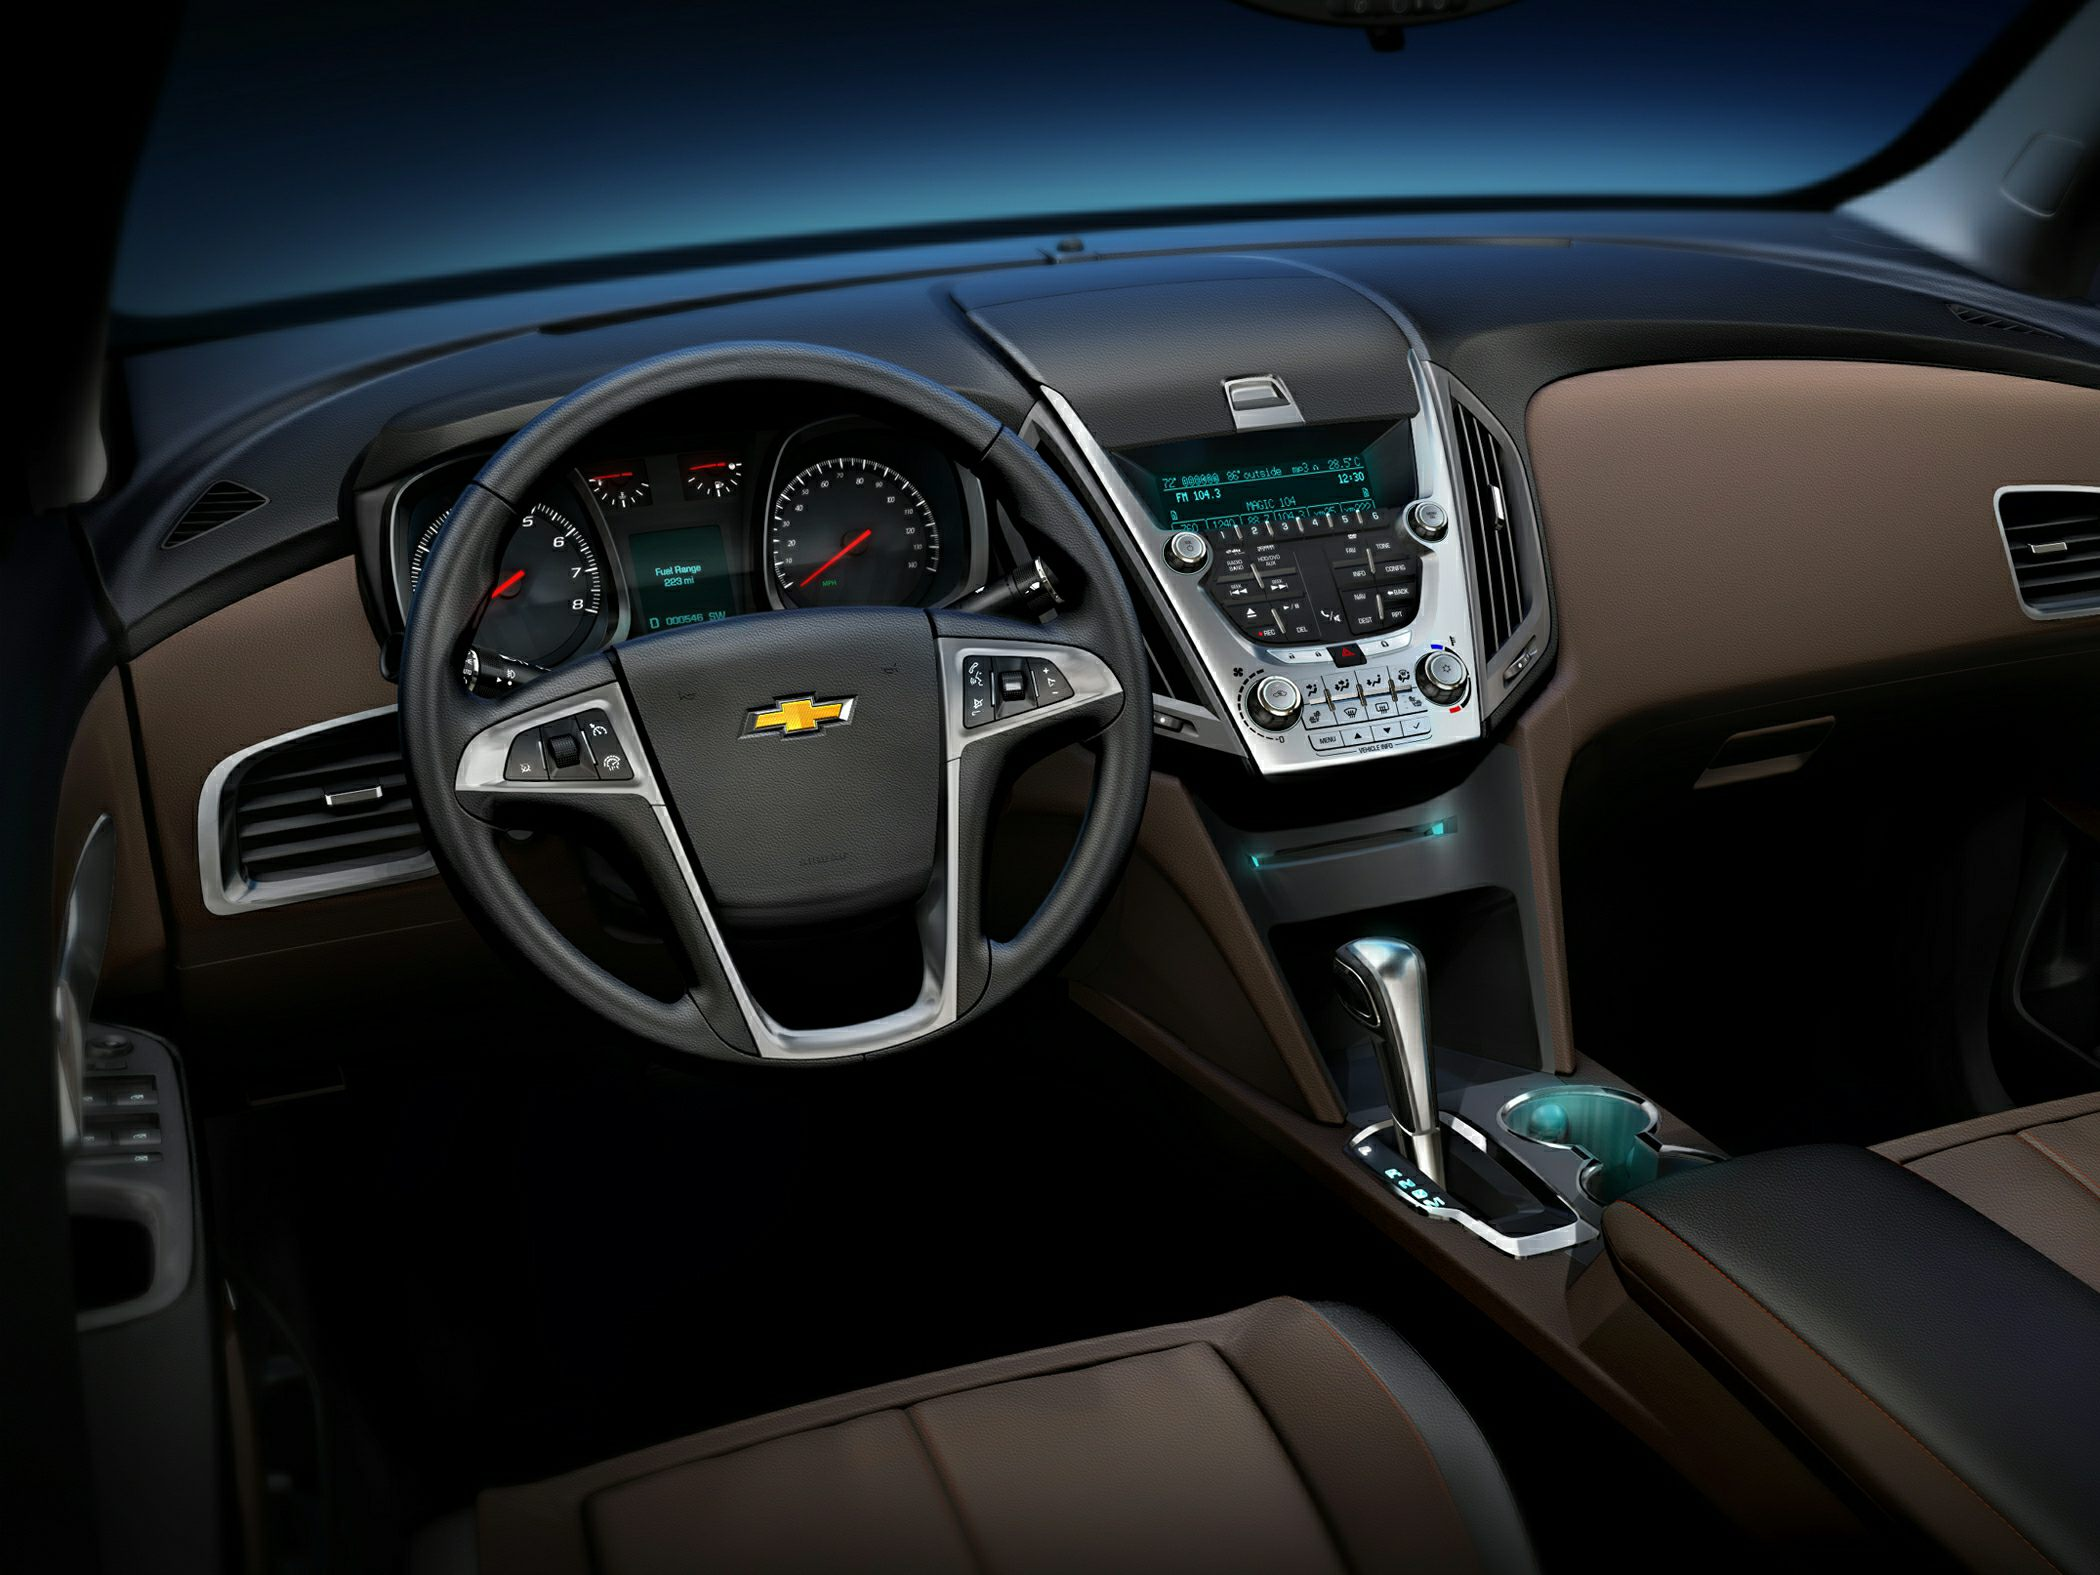 chevrolet equinox pictures #11